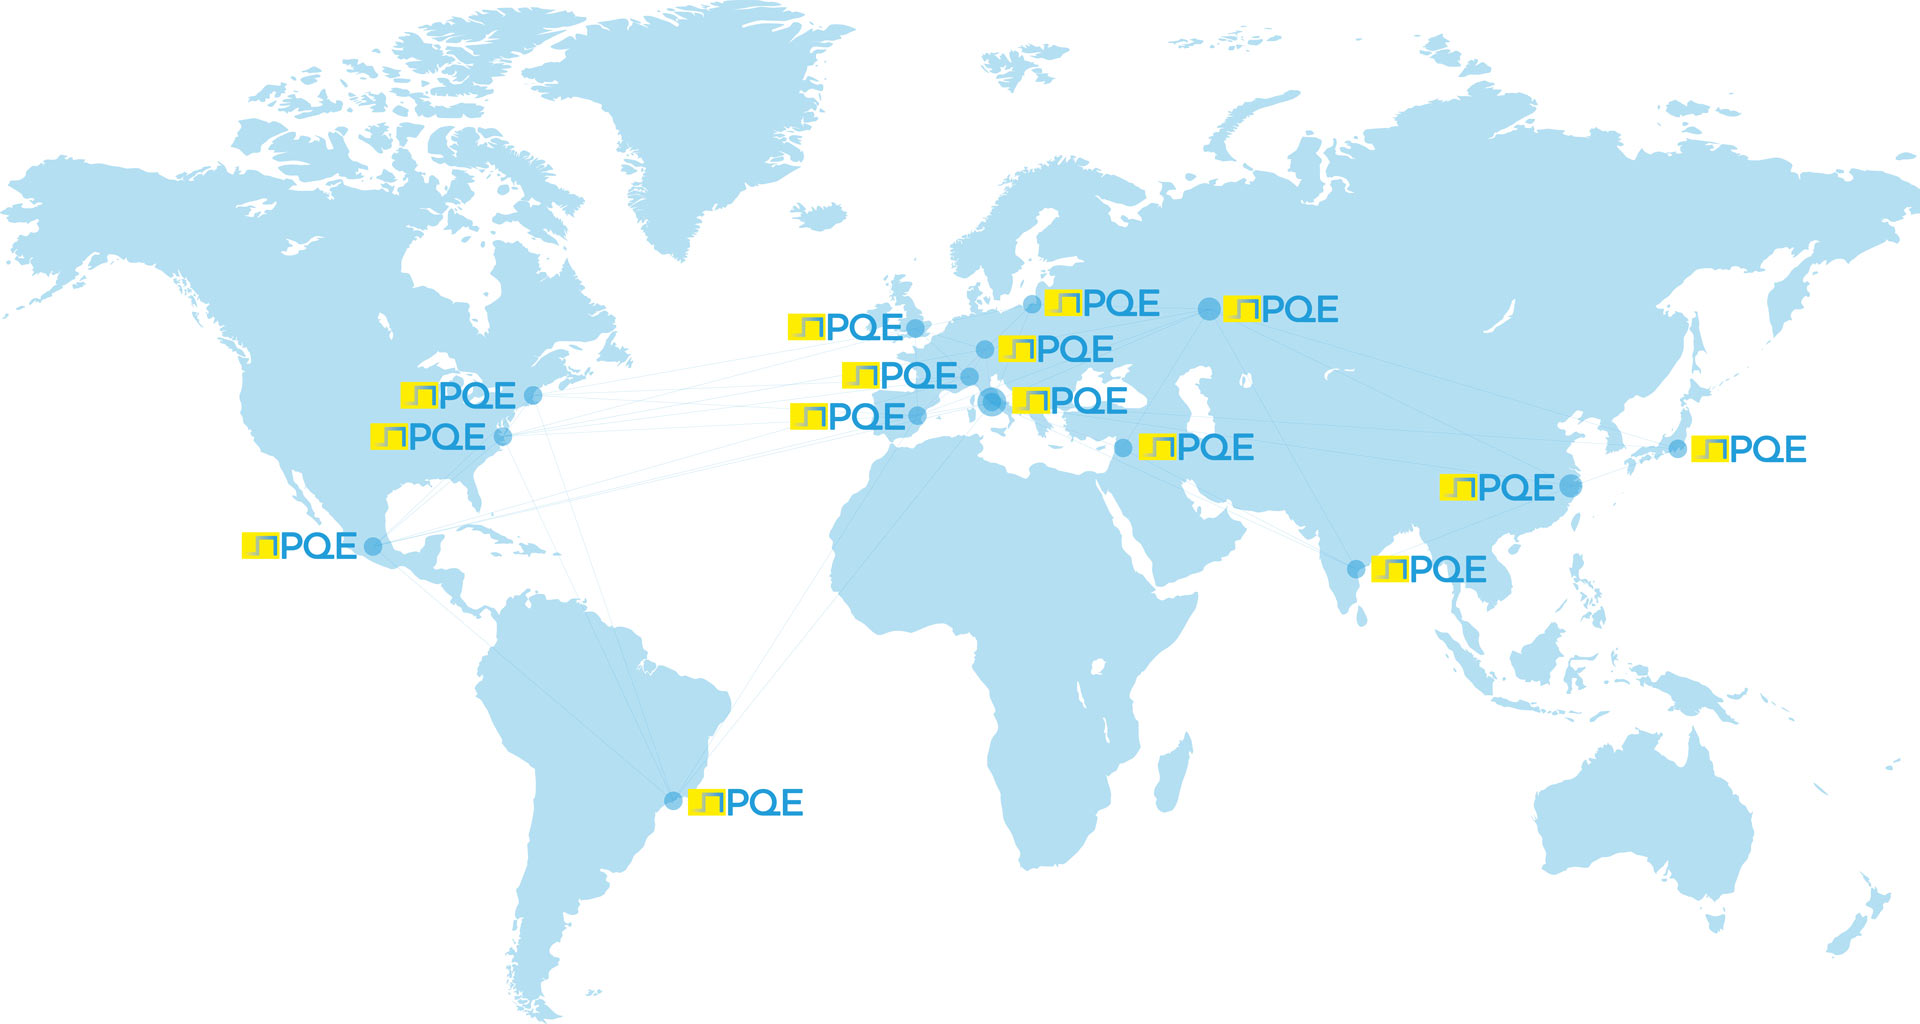 PQE offices Worldwide